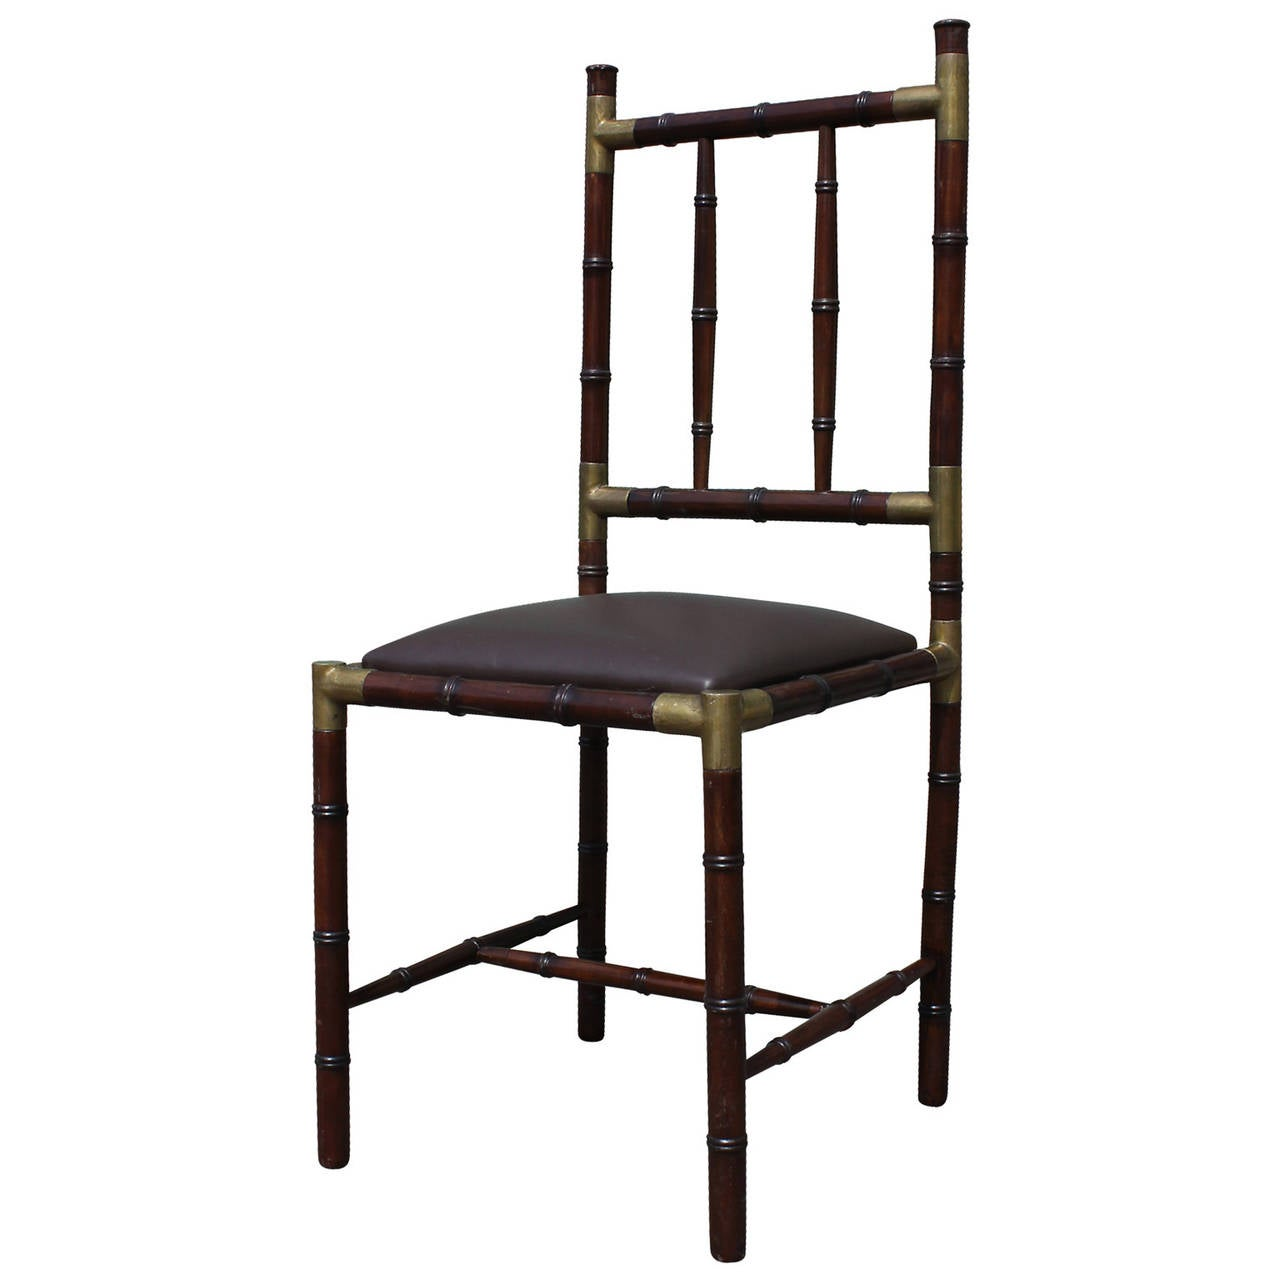 Campaign modern set of six faux bamboo dining chairs with brass accents for sale